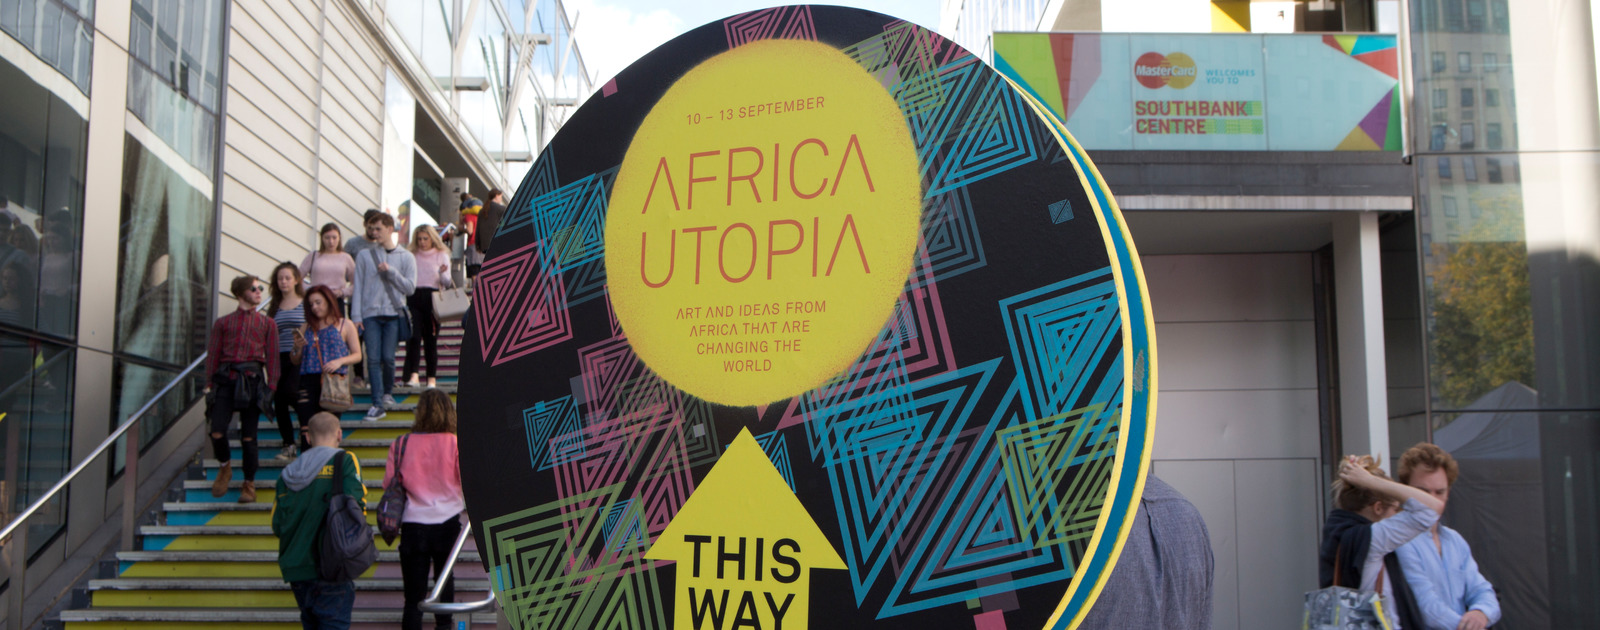 Sign for Africa Utopia Festival 2015 at the Southbank Centre